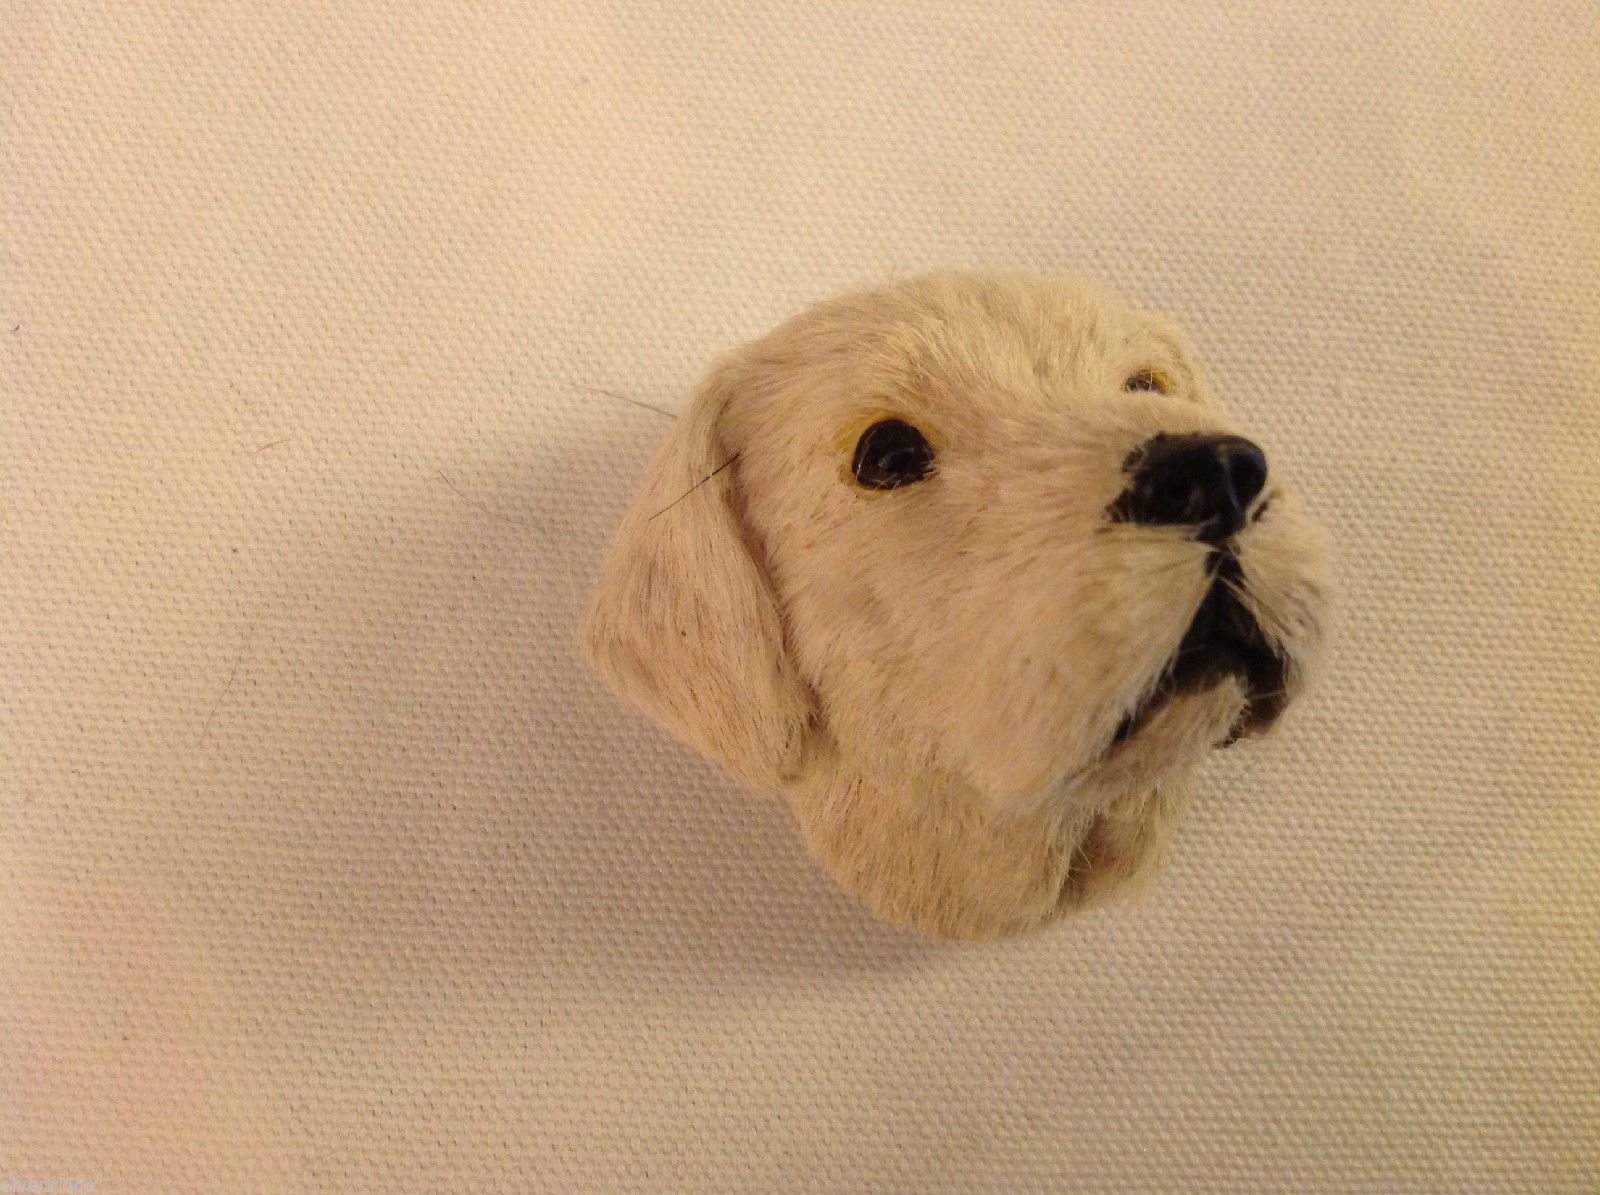 Yellow labrador  dog  furry refrigerator magnet in 3D